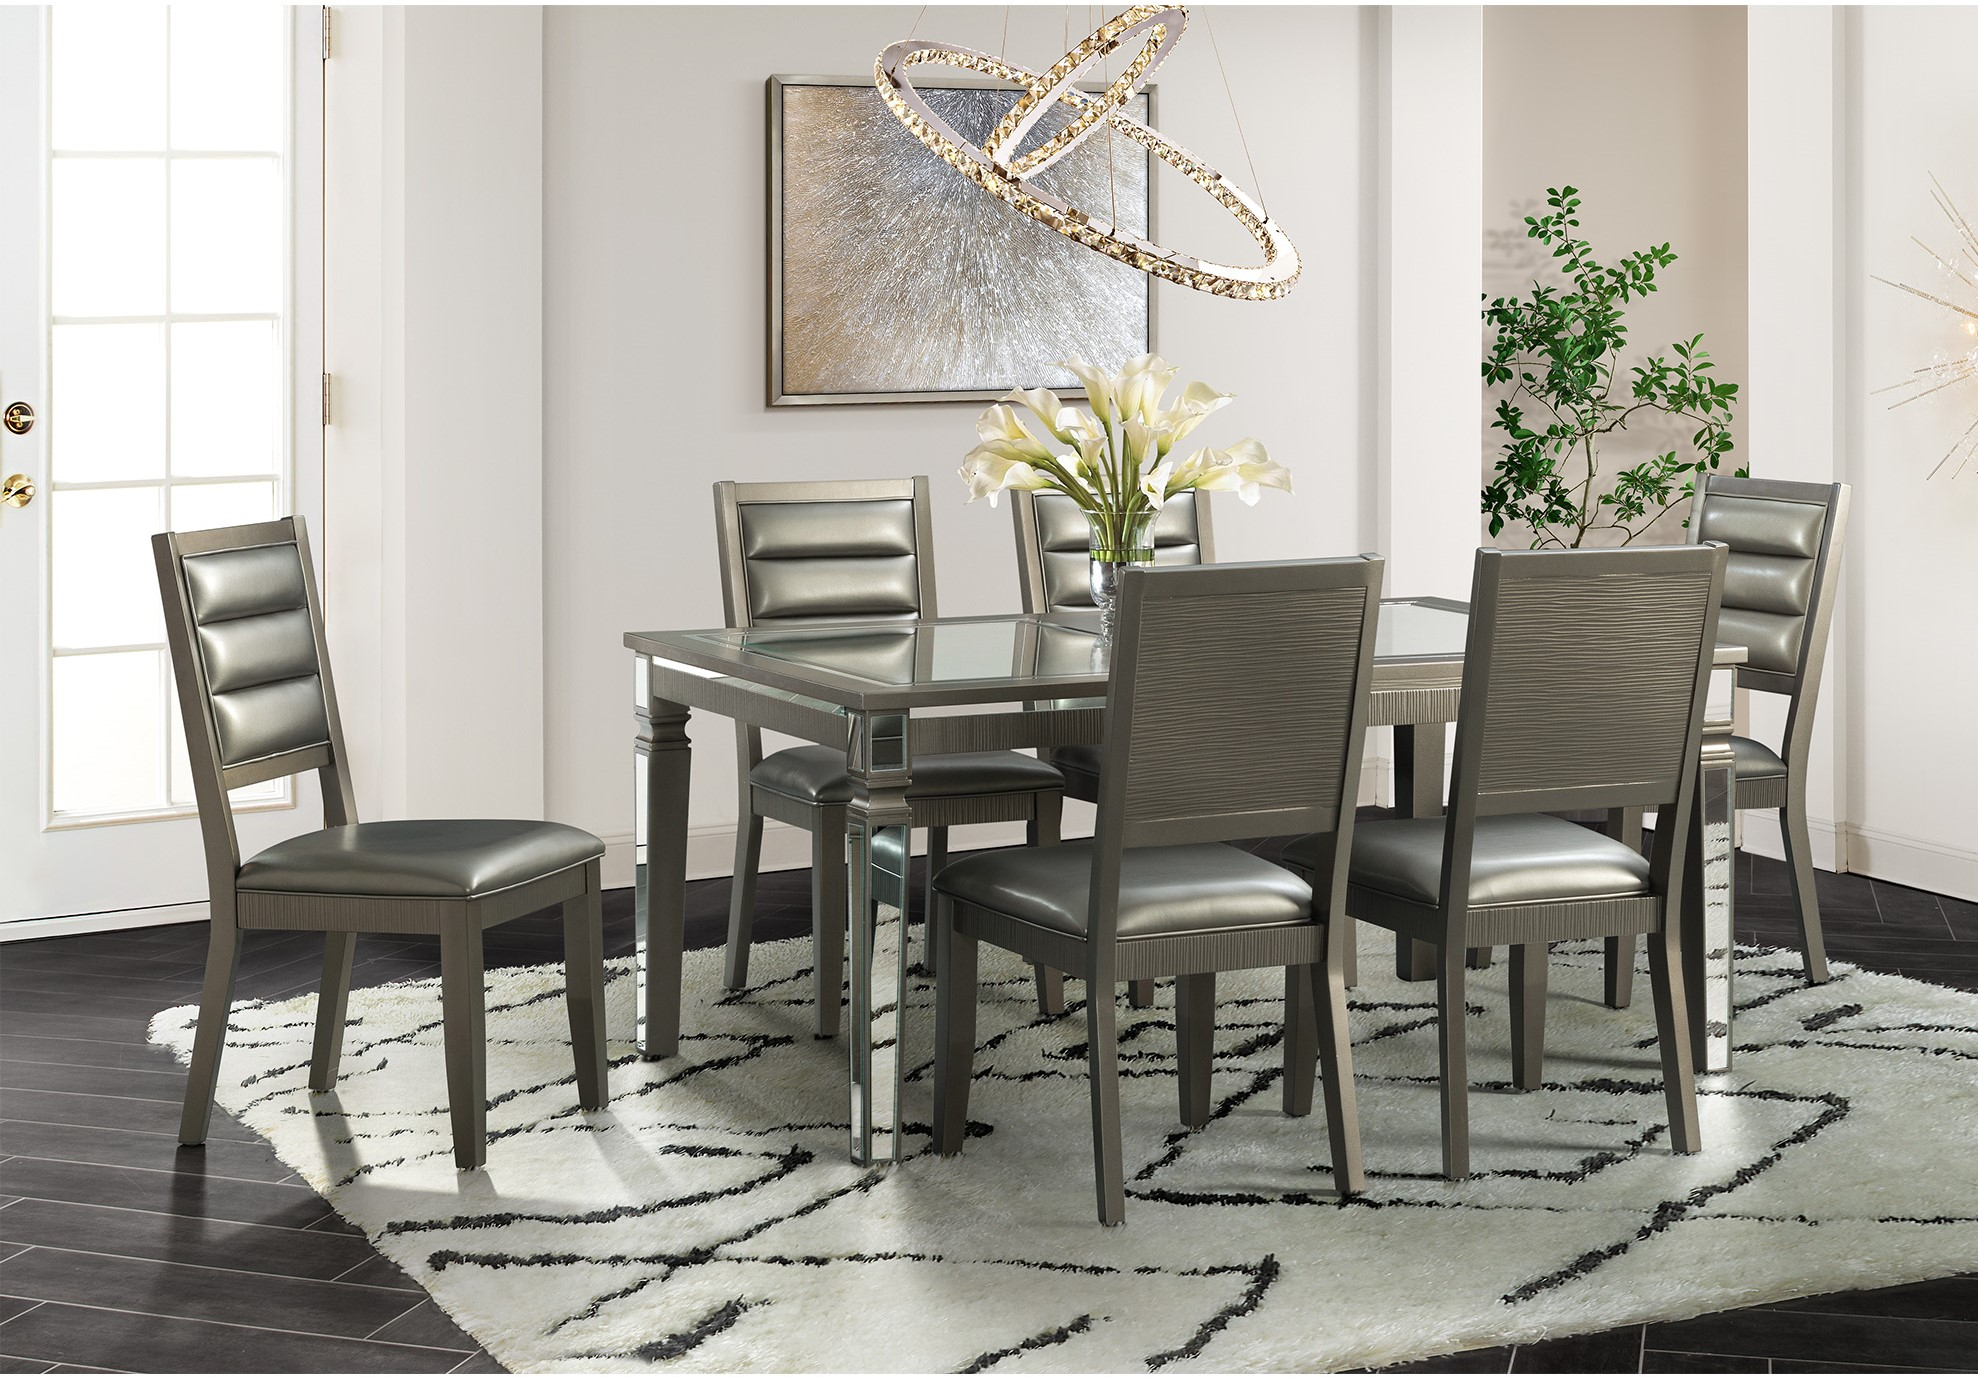 14.5 Glam Dining Collection with 6 chairs